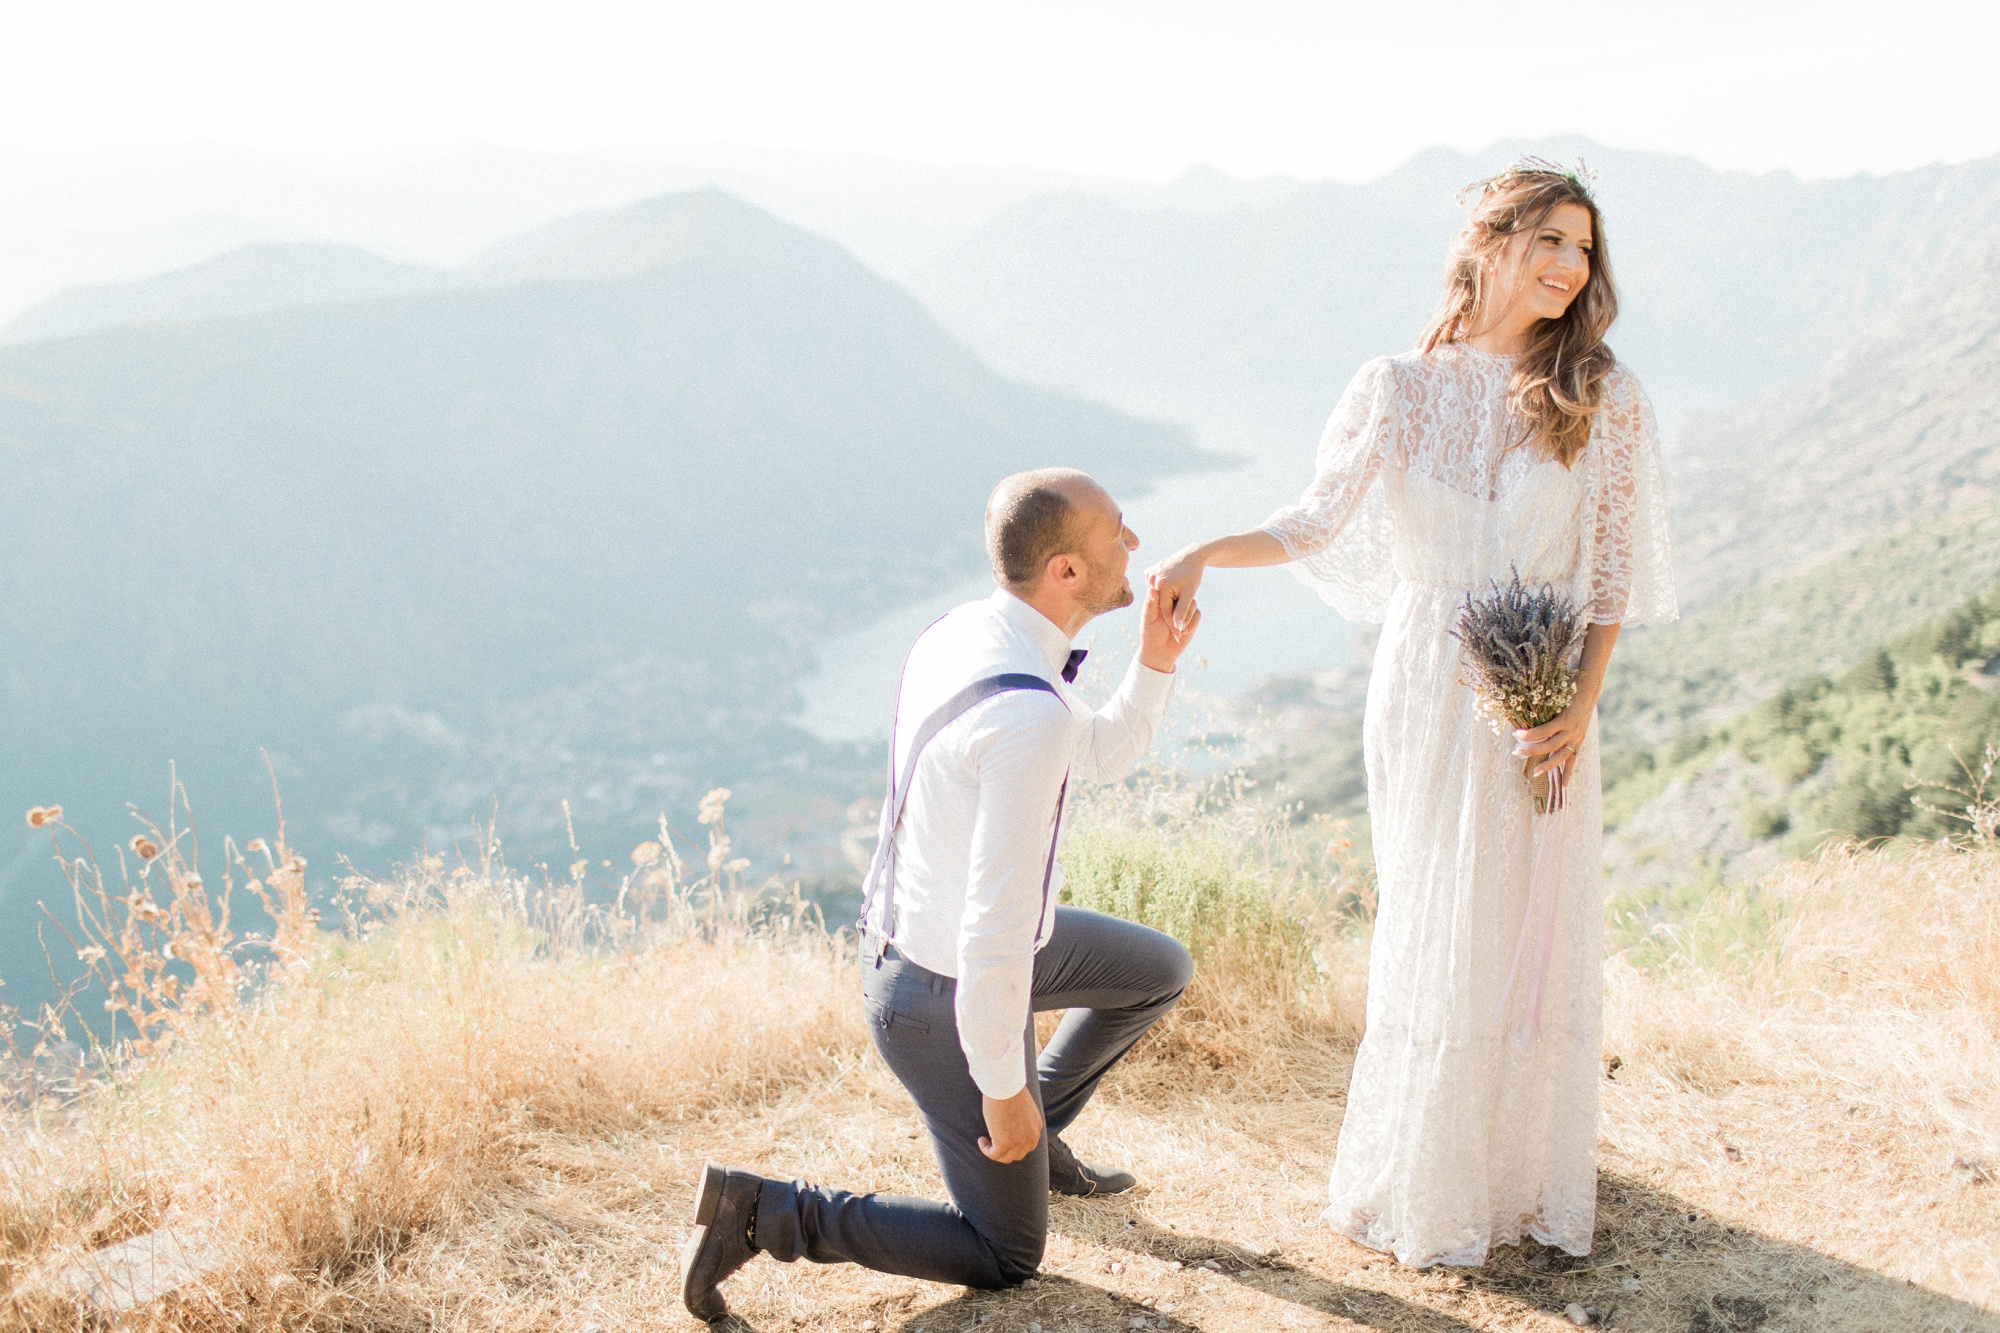 Albania Wedding Photographer - Anjeza Dyrmishi_0435.jpg